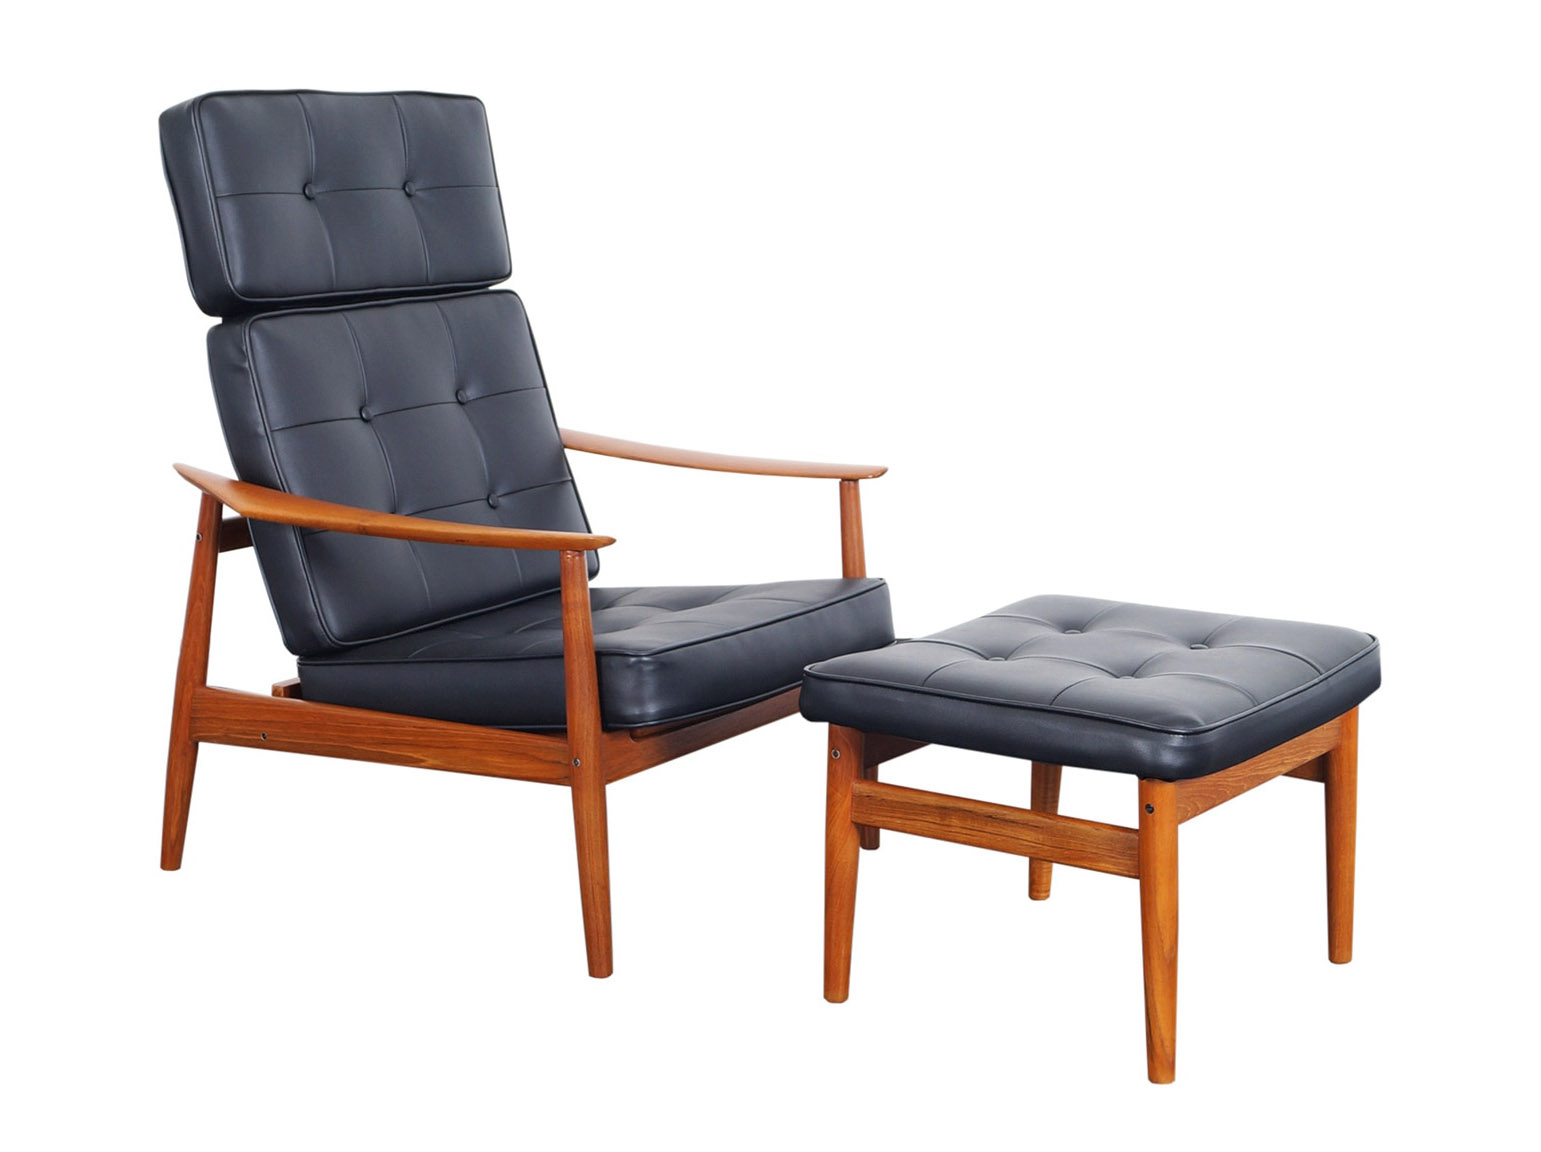 Danish Modern Reclining Lounge Chairs & Ottoman by Arne Vodder